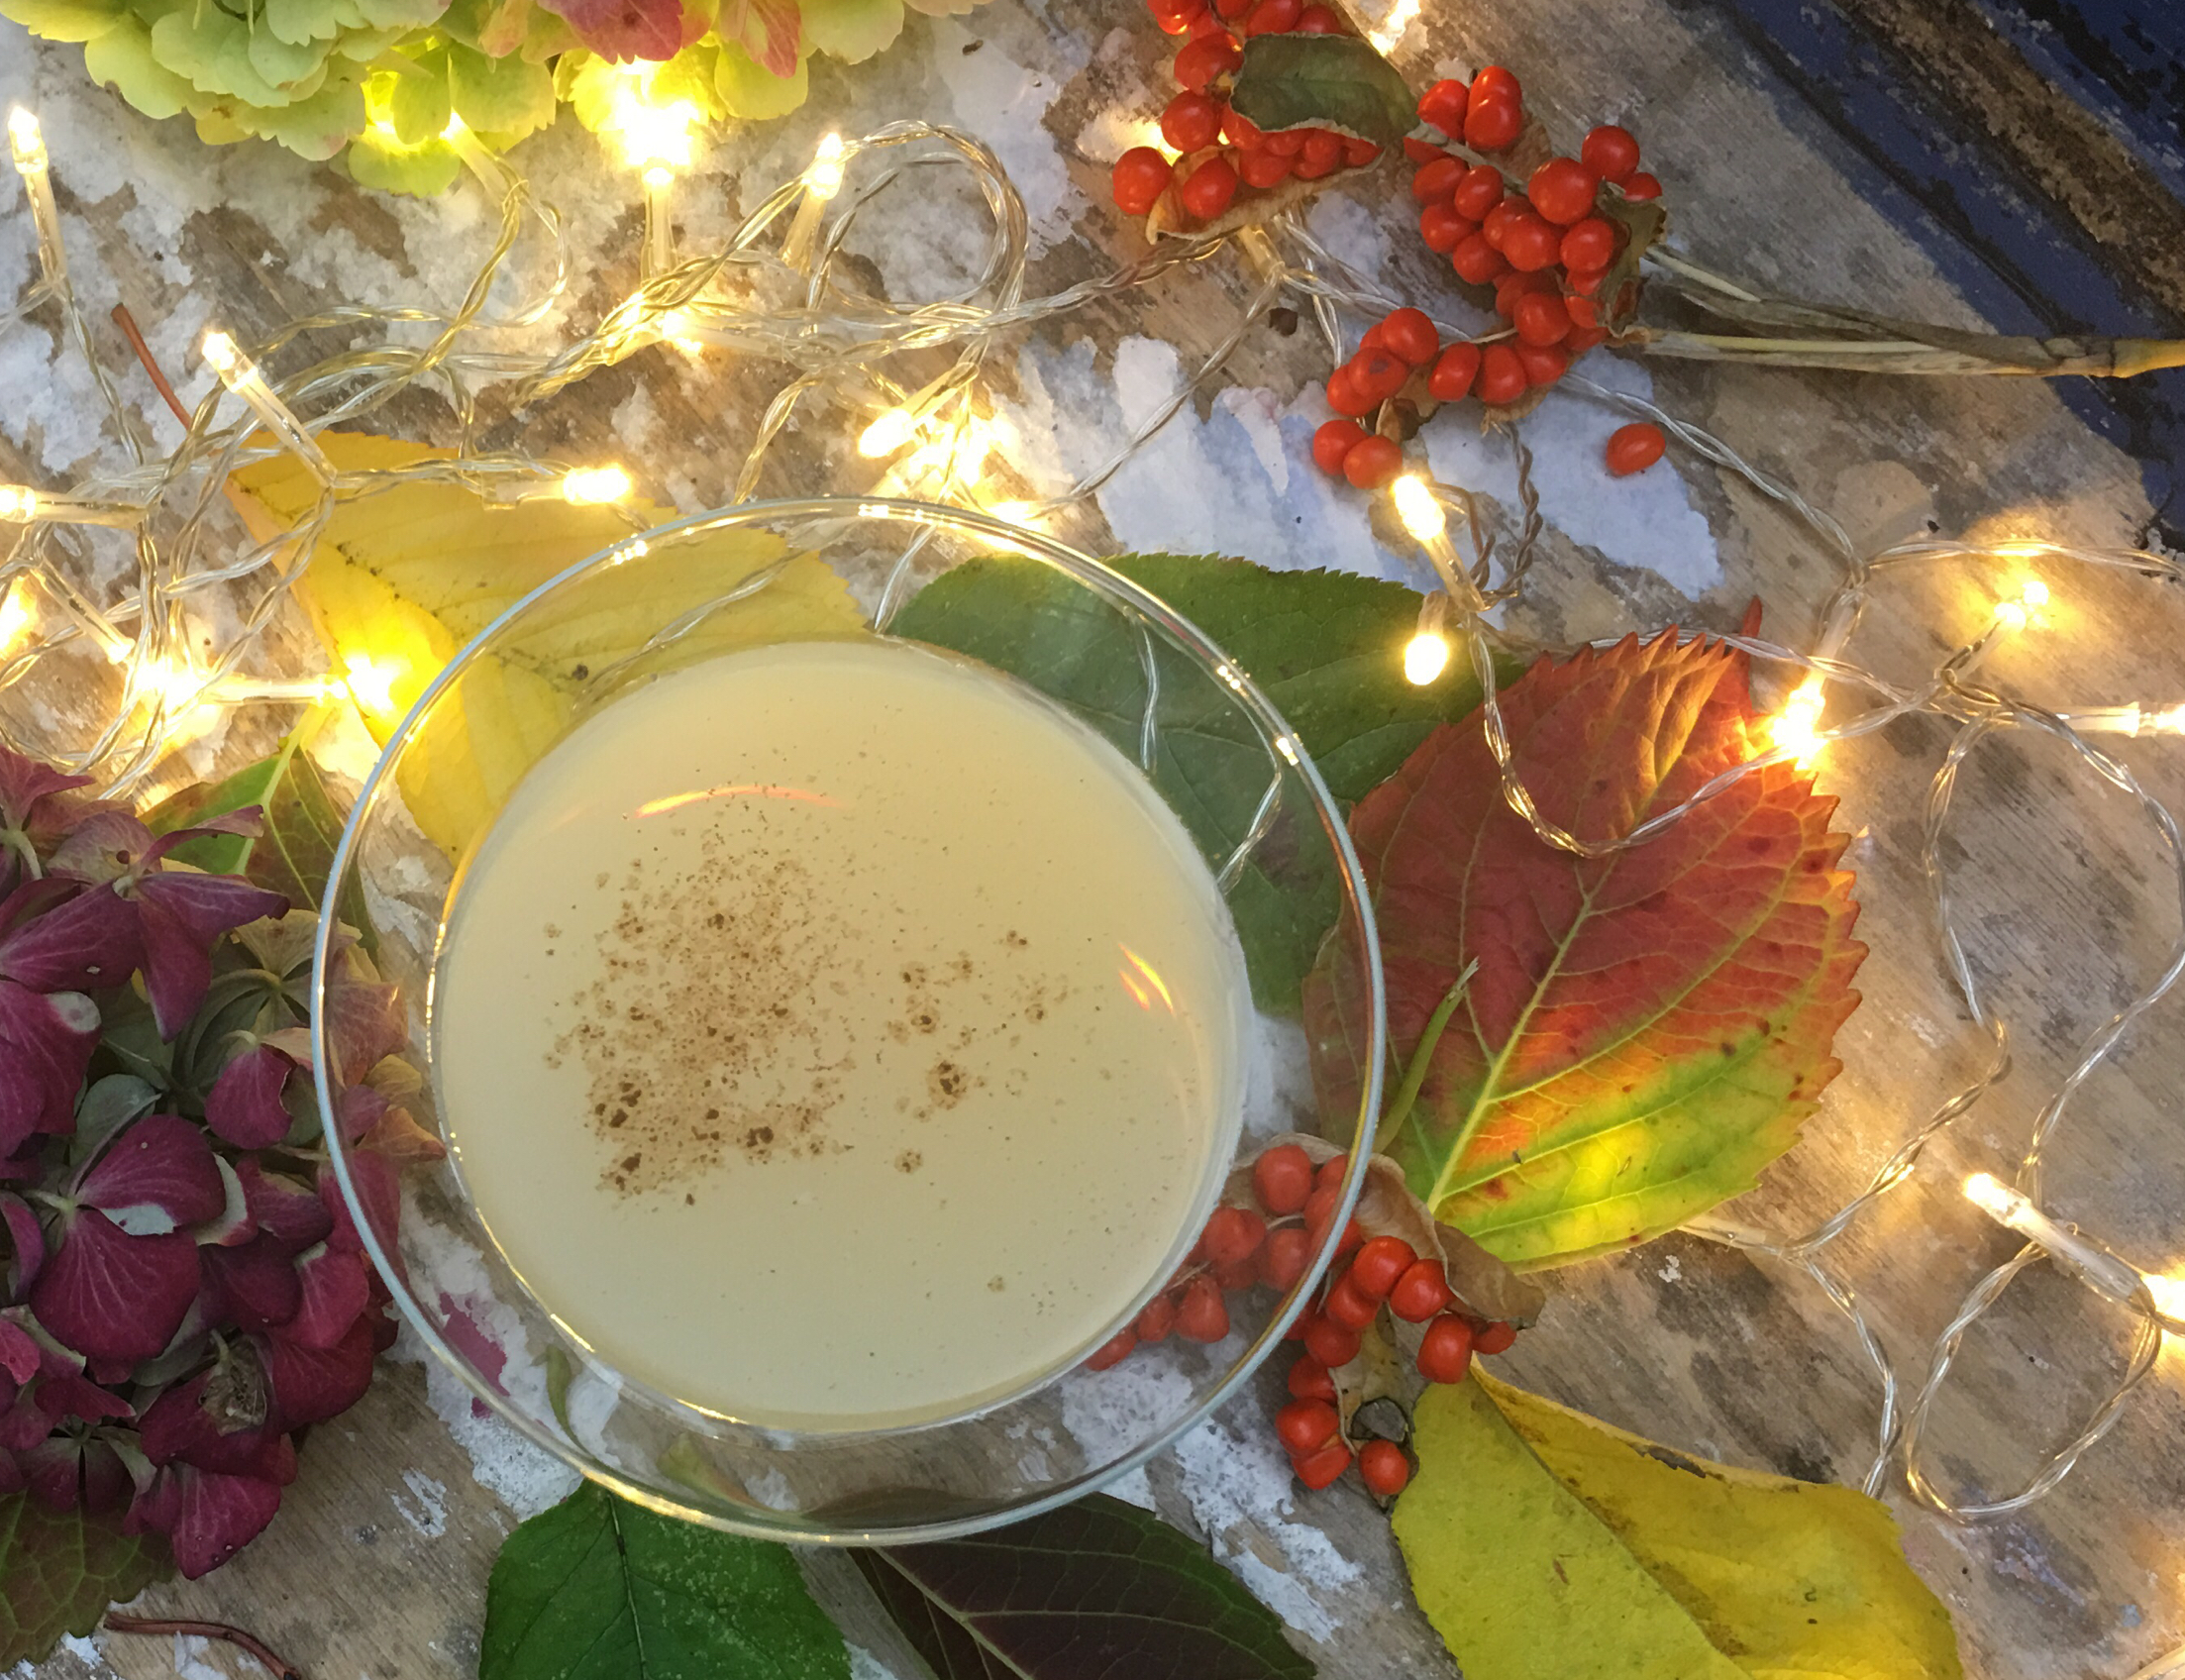 Beachhutcook's version of Waitrose Cookery Schools Apple Pie Martini